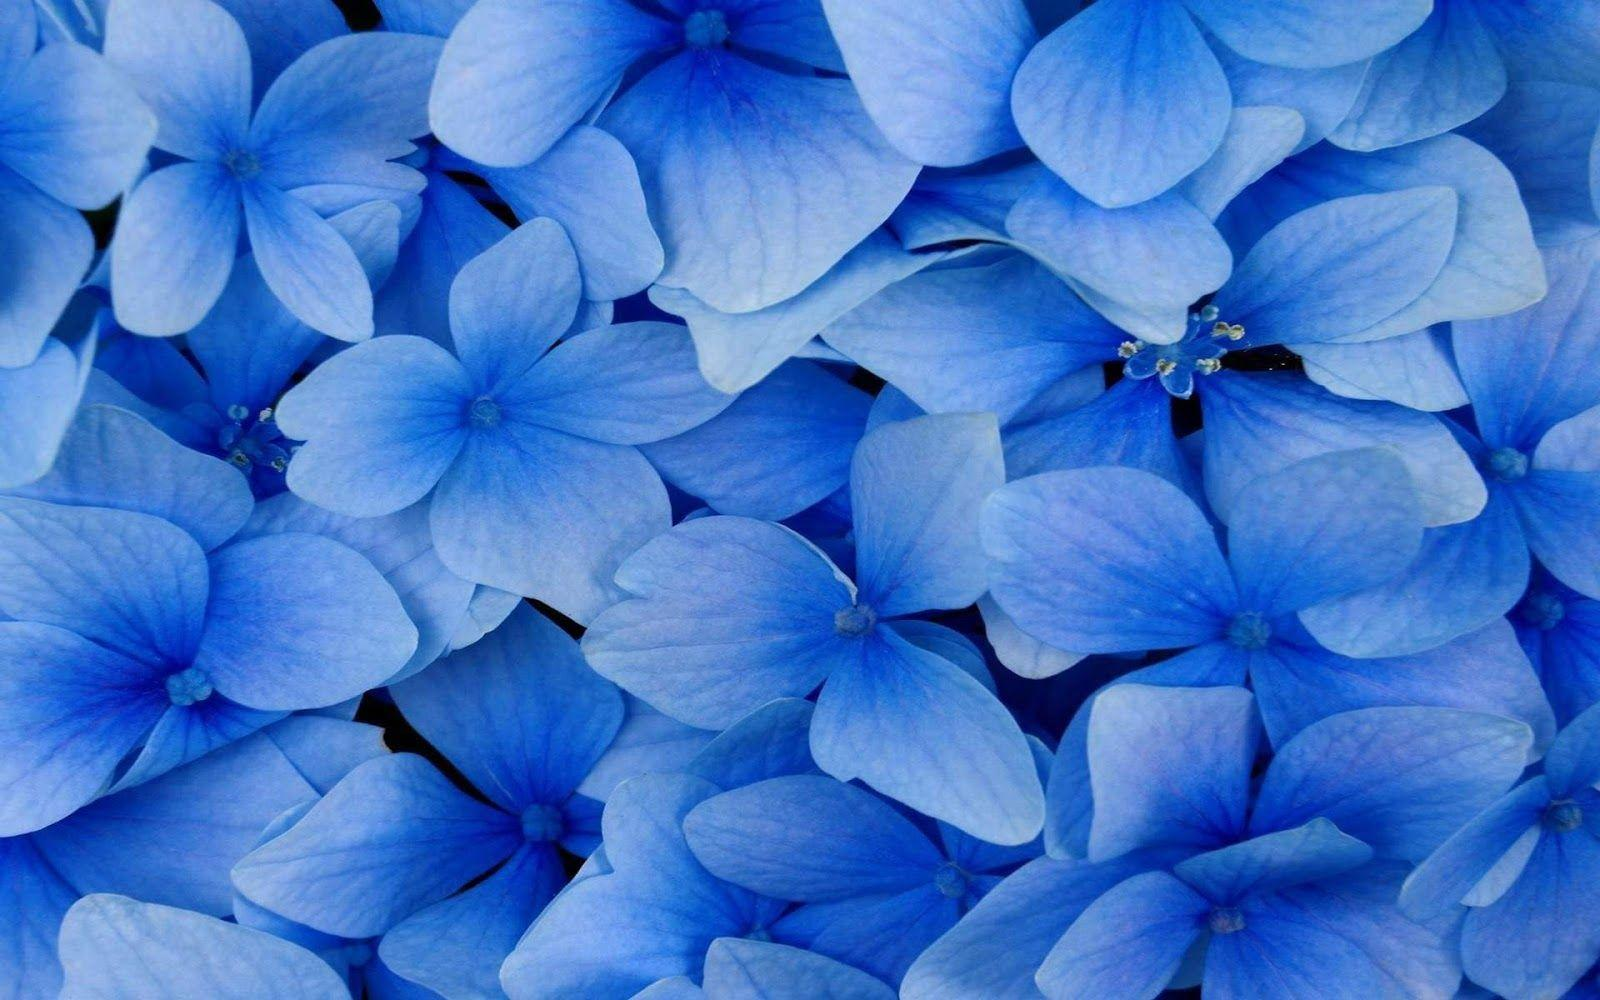 Blue flowers wallpapers wallpaper cave hd blue flowers hd desktop 10 hd wallpapers izmirmasajfo Image collections